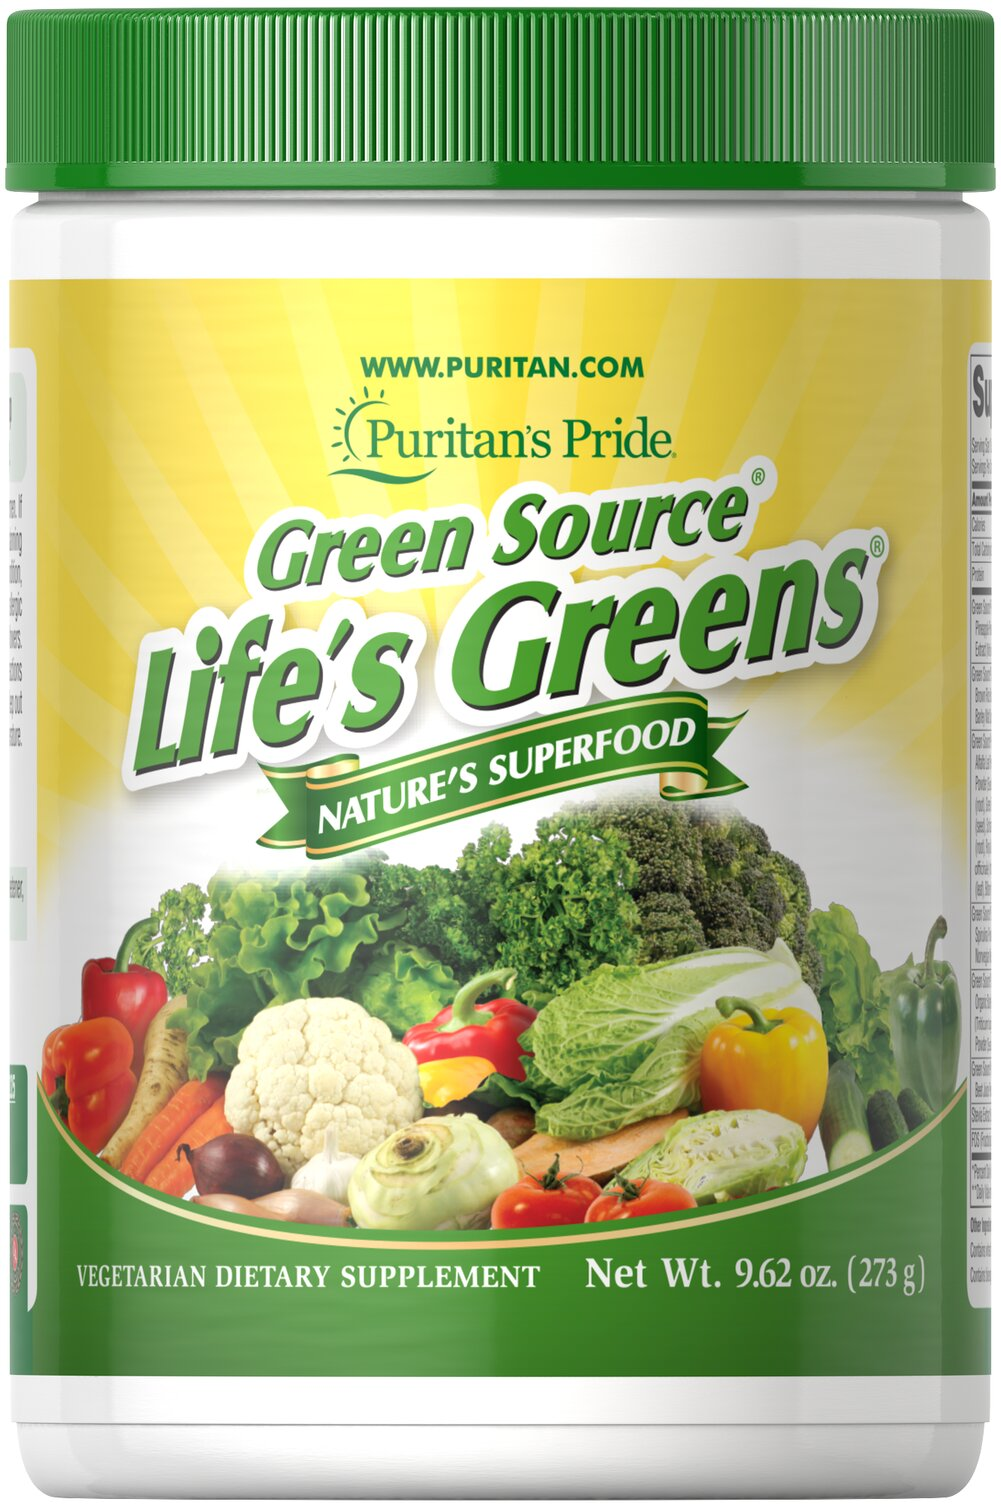 Life's Greens® with Advanced Probiotic Formula <p>With over 35 active ingredients, Life's Greens® powder provides important green factors to give you the optimal edge you need to energize your day.**</p><p></p>Free Of: Yeast, Preservatives, Artificial Color, Artificial Flavor<p></p><p>Oxyphyte® is a registered trademark of RFI Blending LLC.</p> 9.62 oz Powder  $39.99